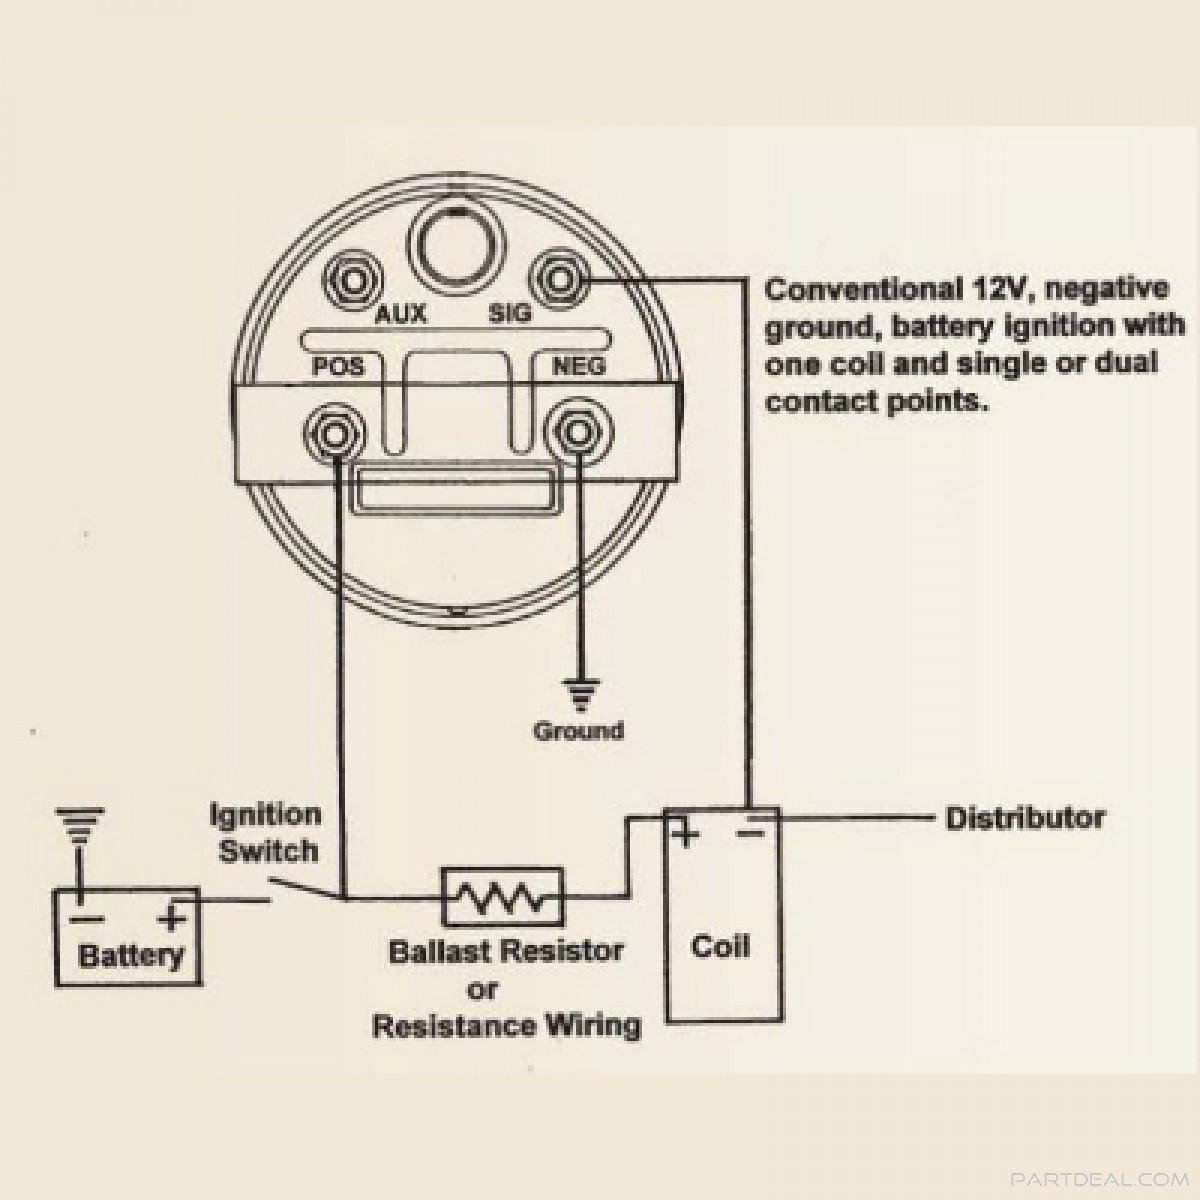 Tachometer Wiring Diagram from getdrawings.com